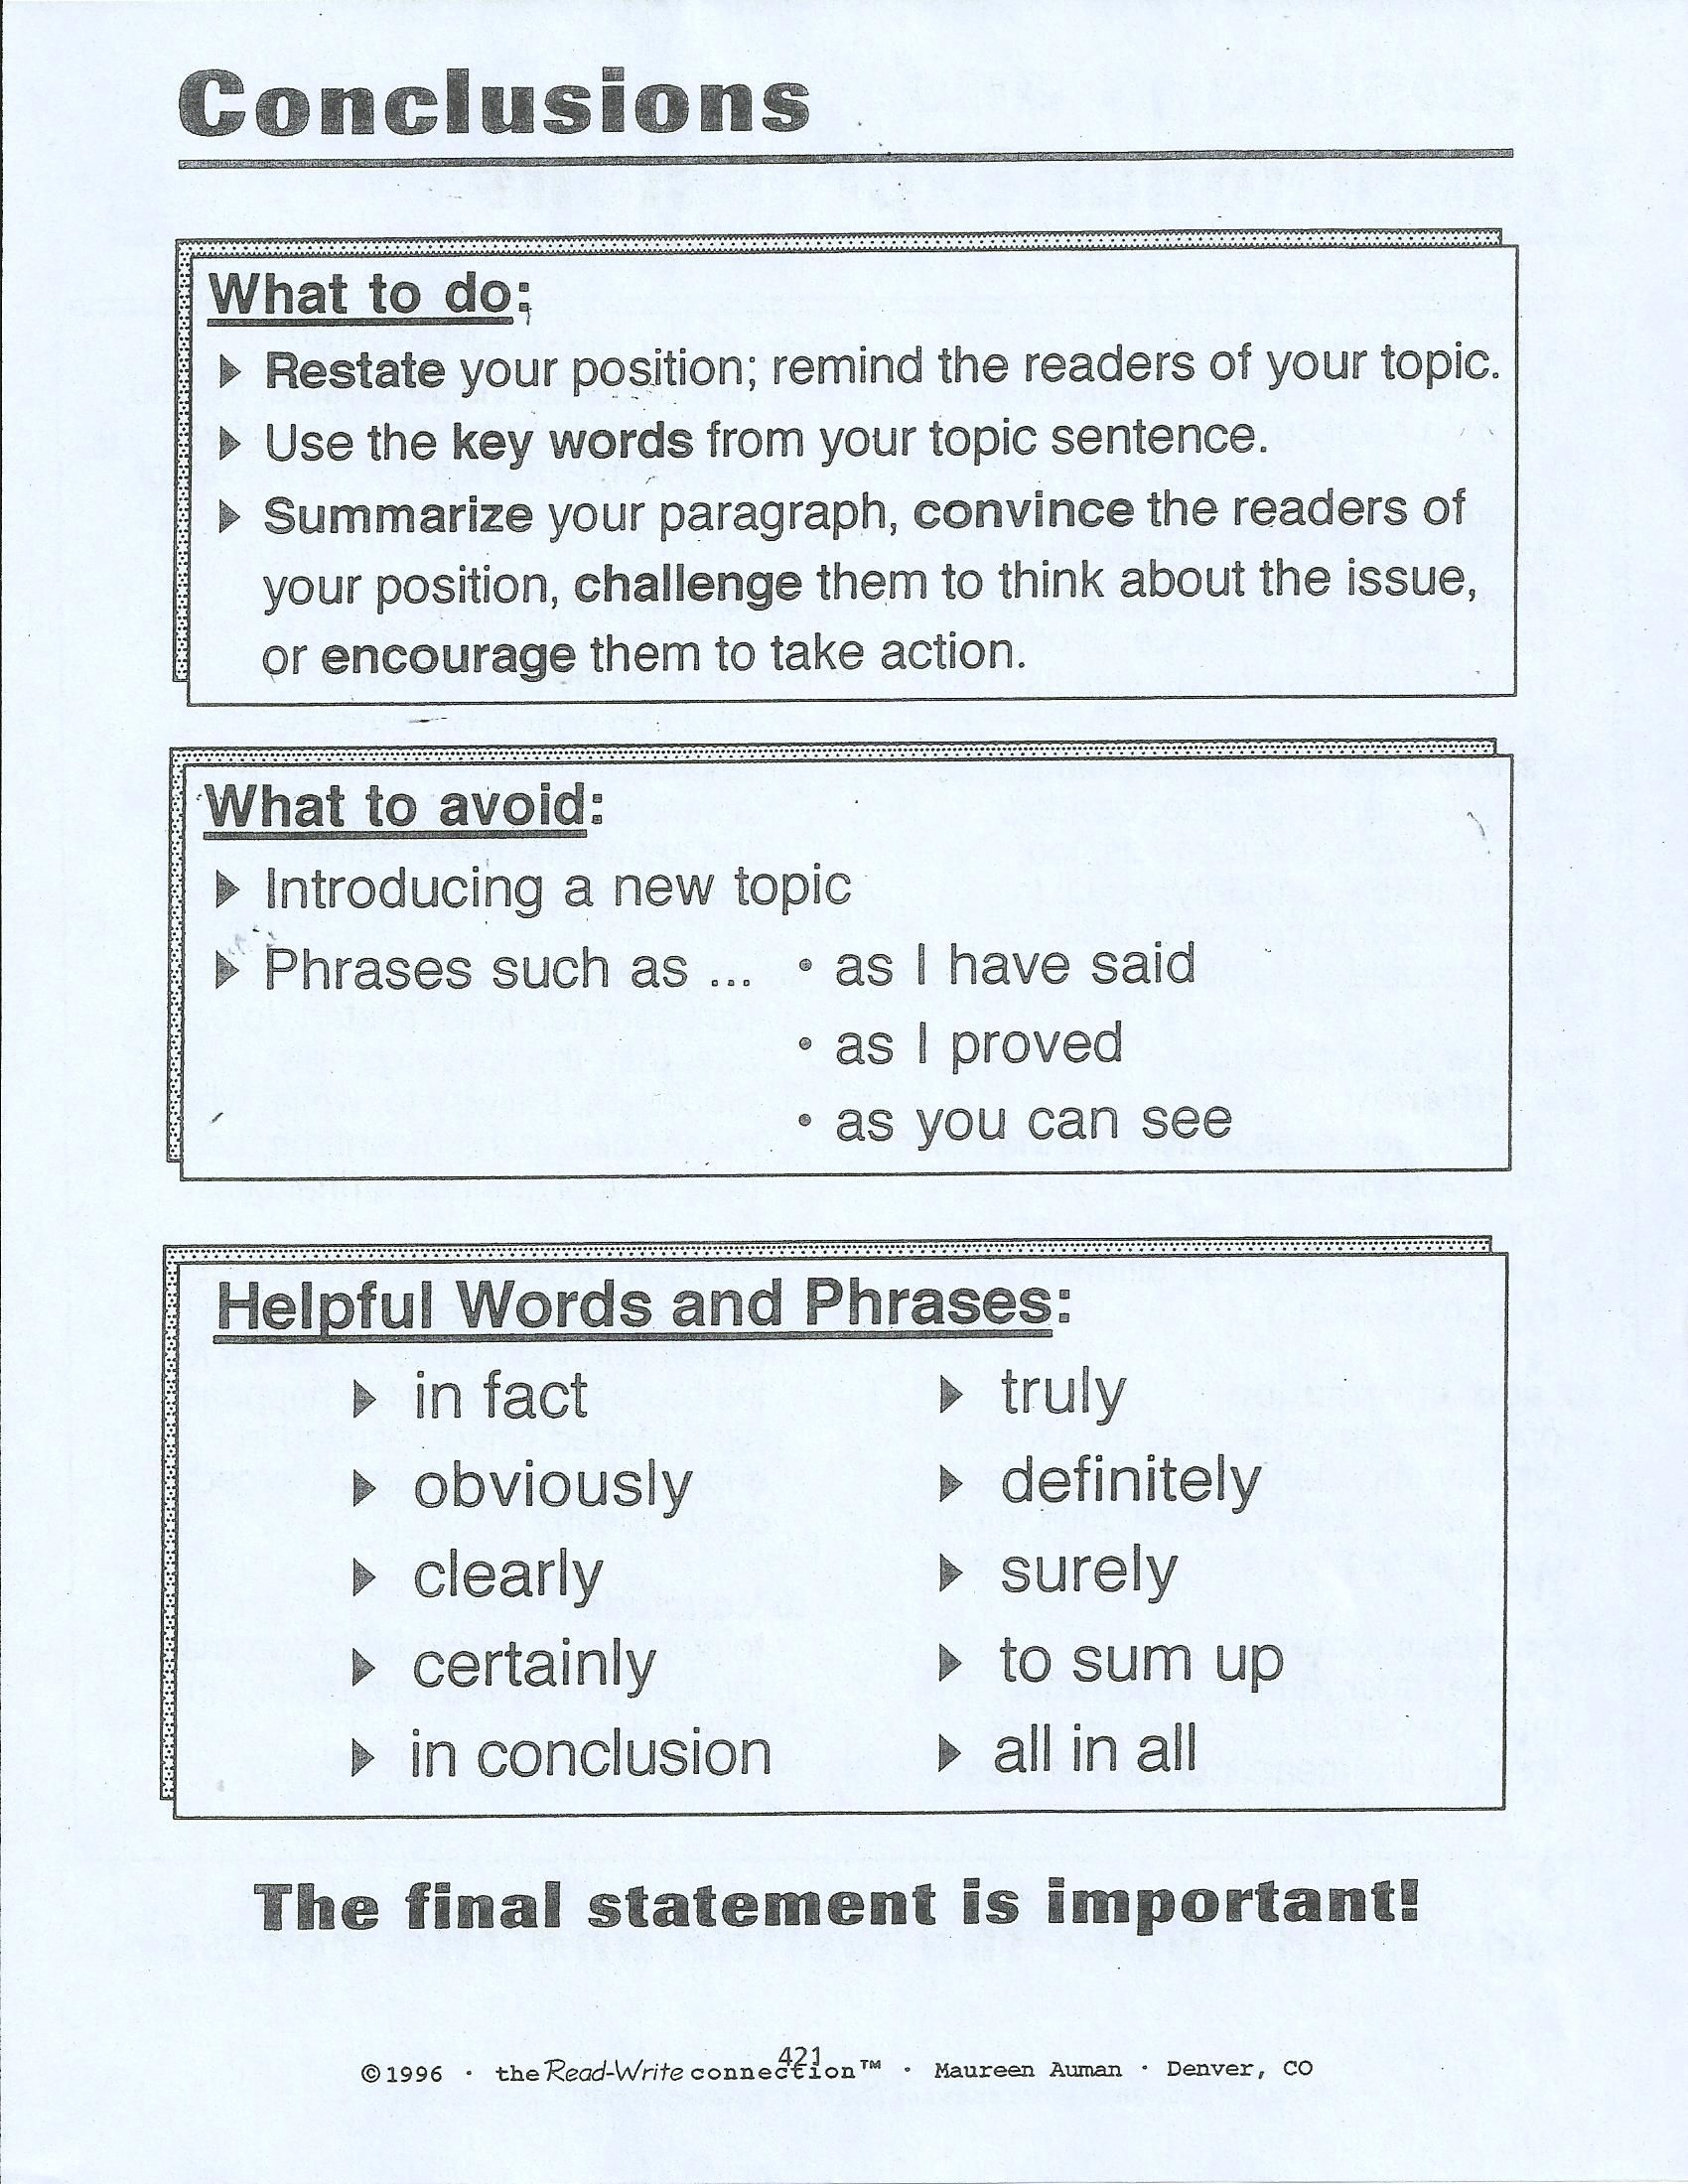 opinion article examples for kids persuasive essay writing some people it difficult to write a conclusion for their paper this summarizes what to do what to avoid and words that can help build up a strong